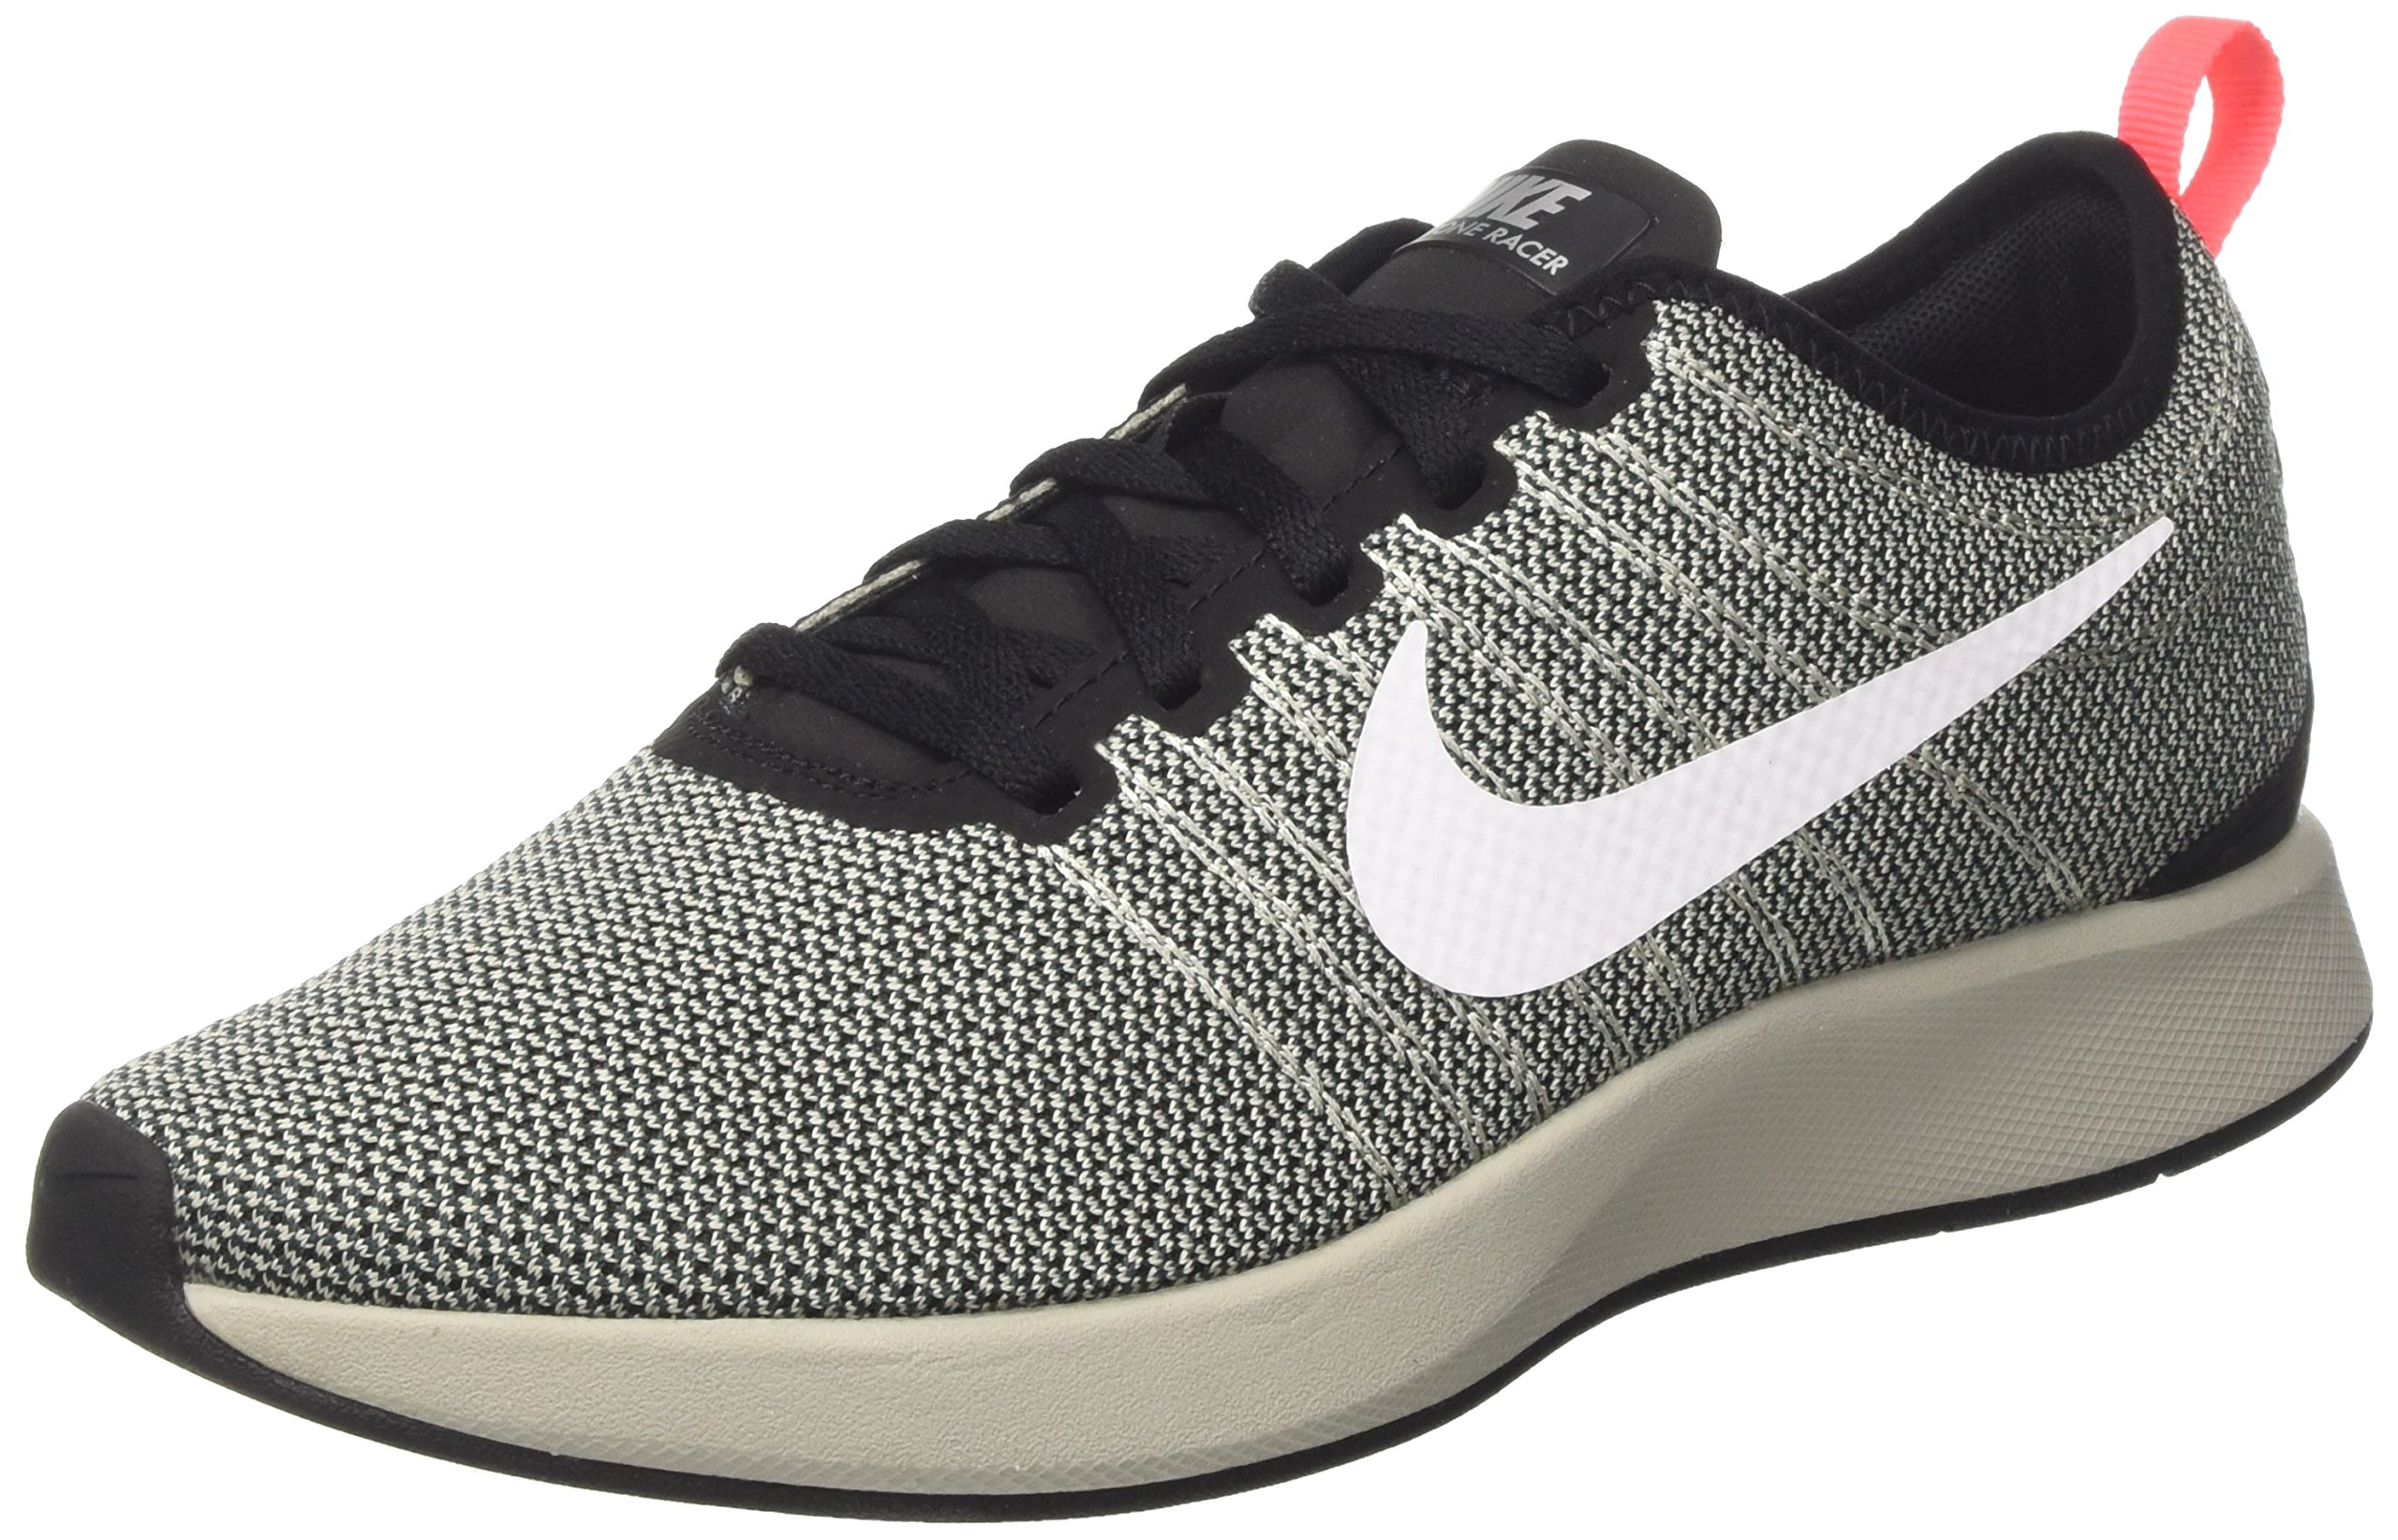 5906dfab22bb2 Galleon - Nike Mens Dualtone Low Top Lace Up Trail Running Shoes ...